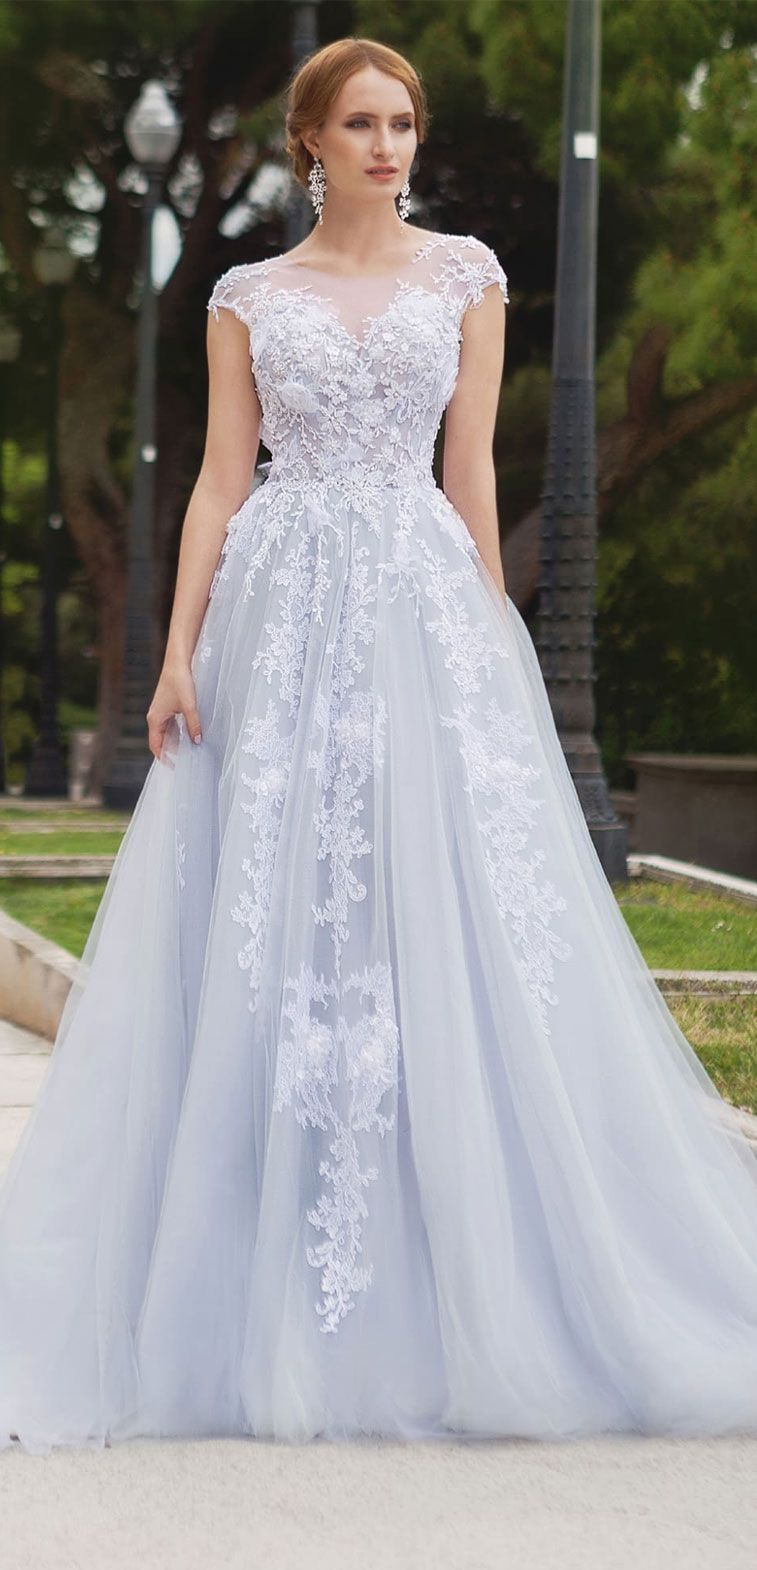 Classic Wedding Dresses With Pretty Details